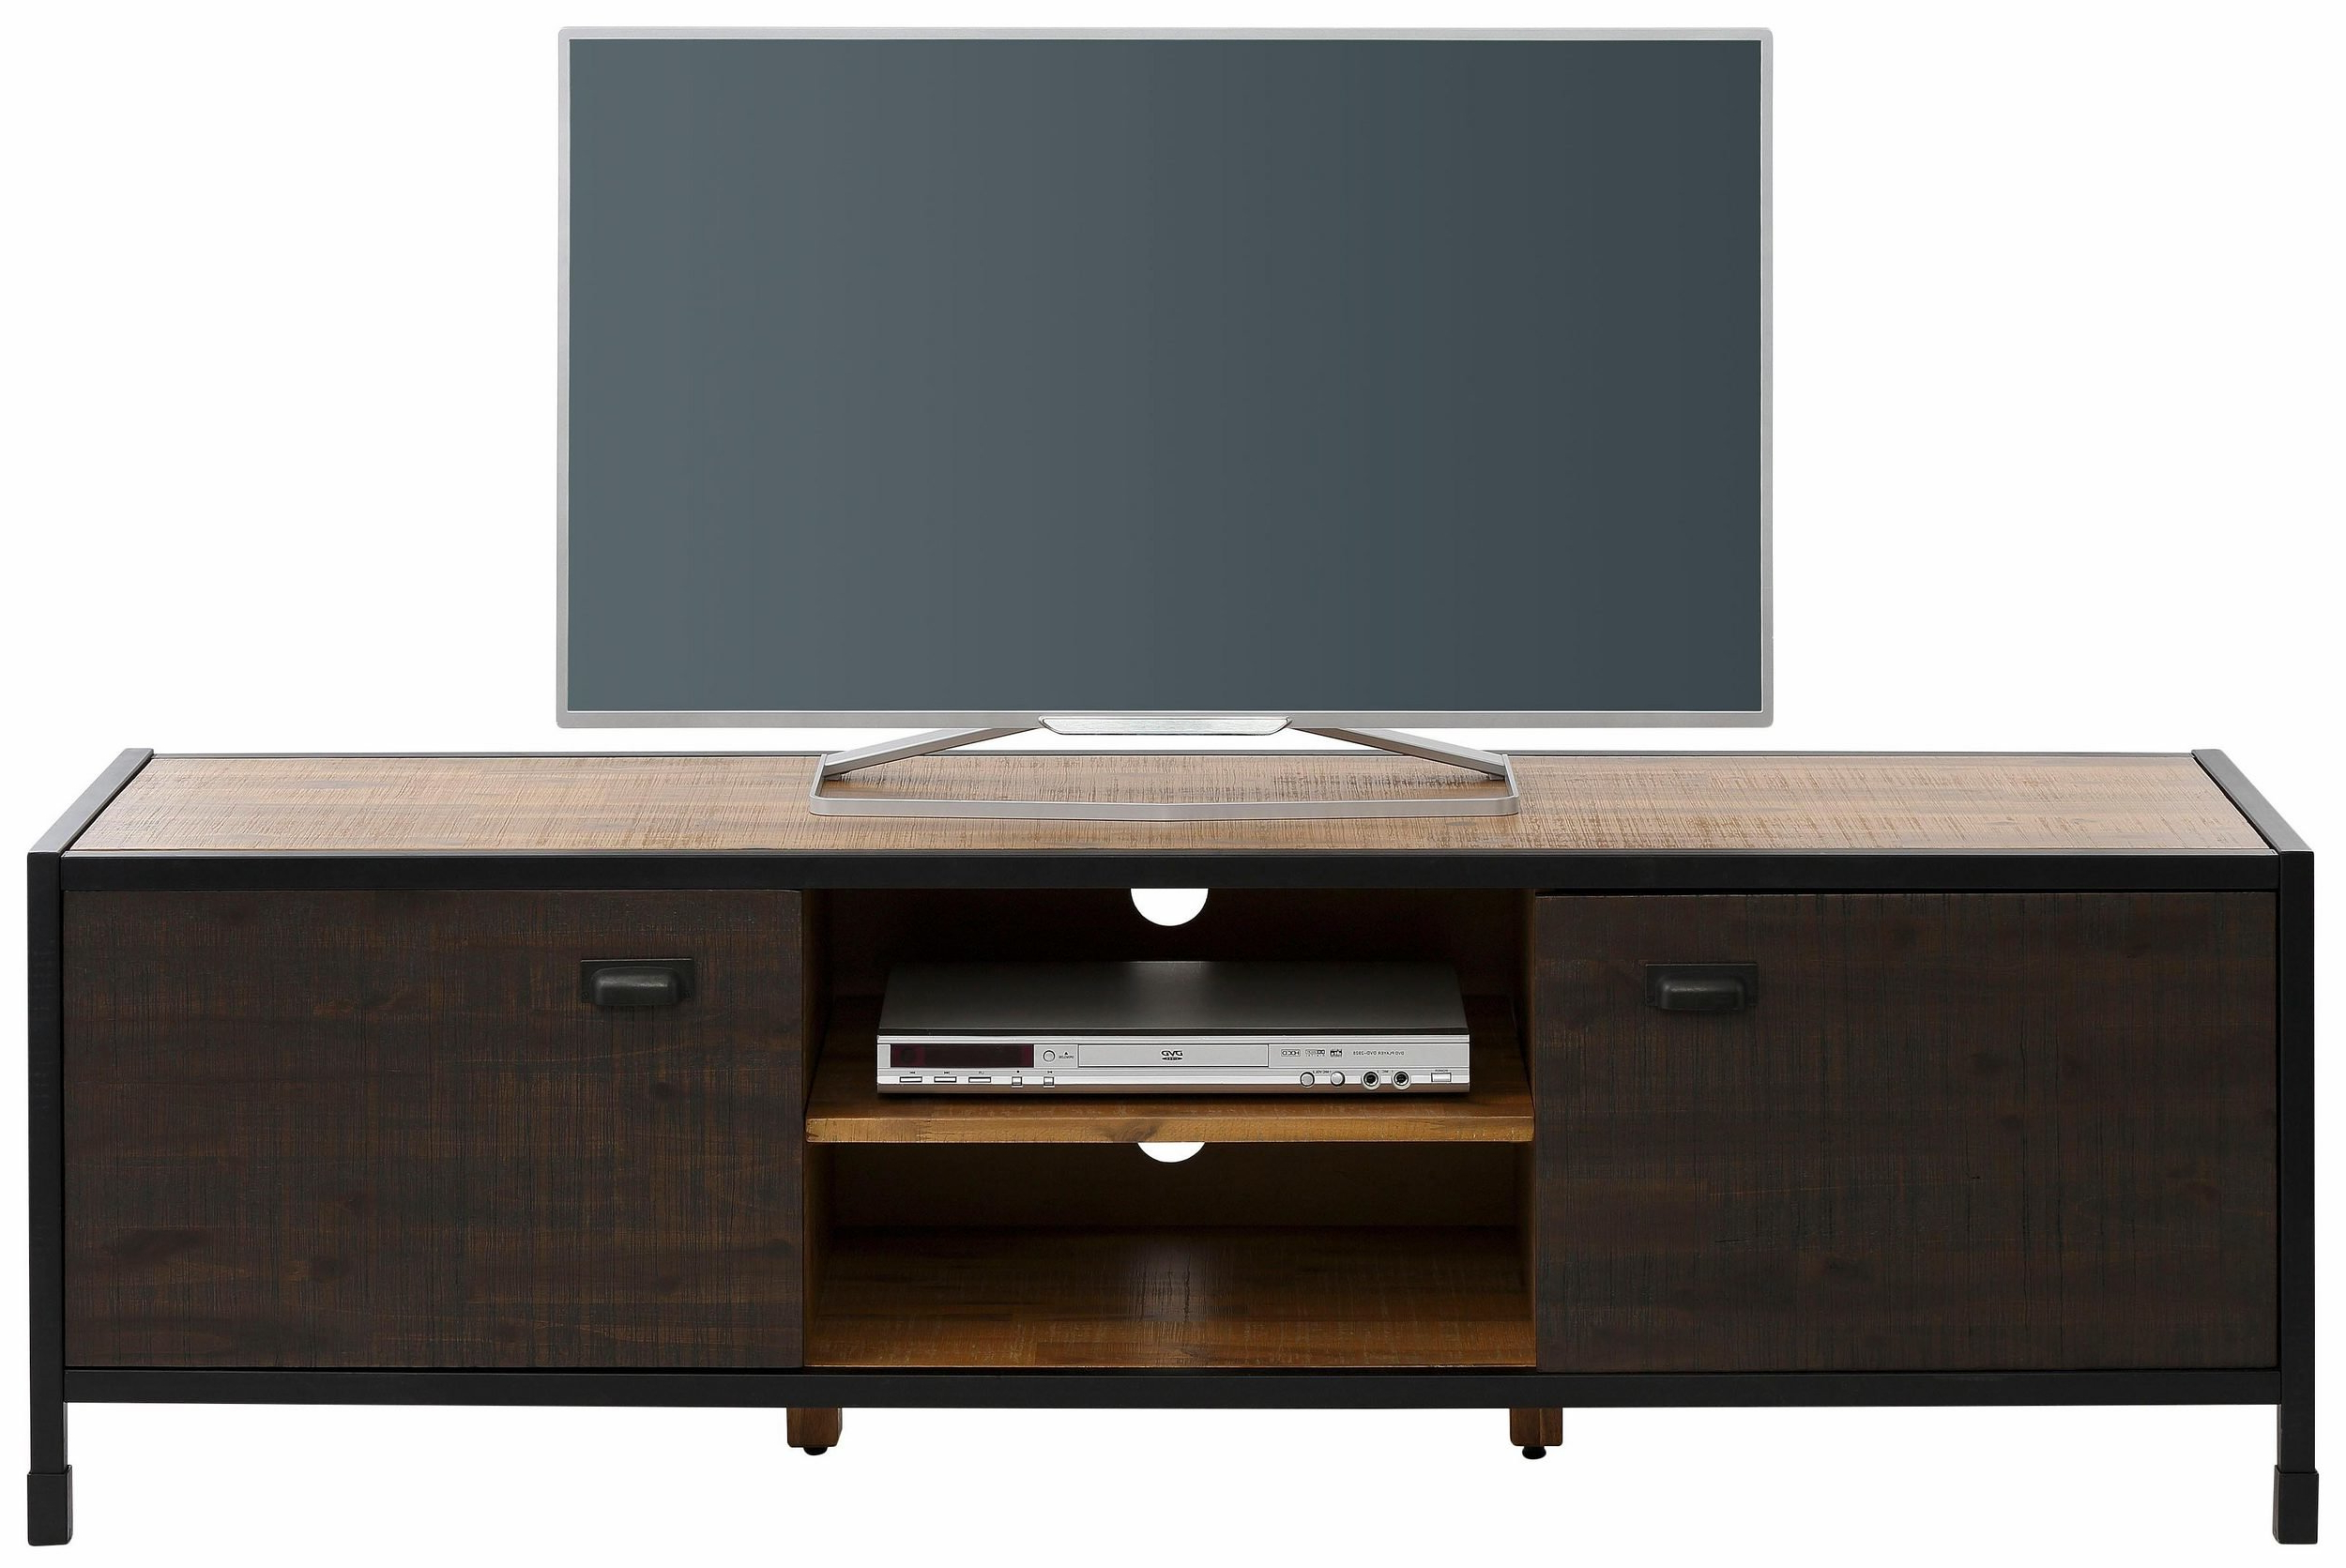 2018 Acacia Tv Stands & Entertainment Units You'll Love (Gallery 6 of 20)